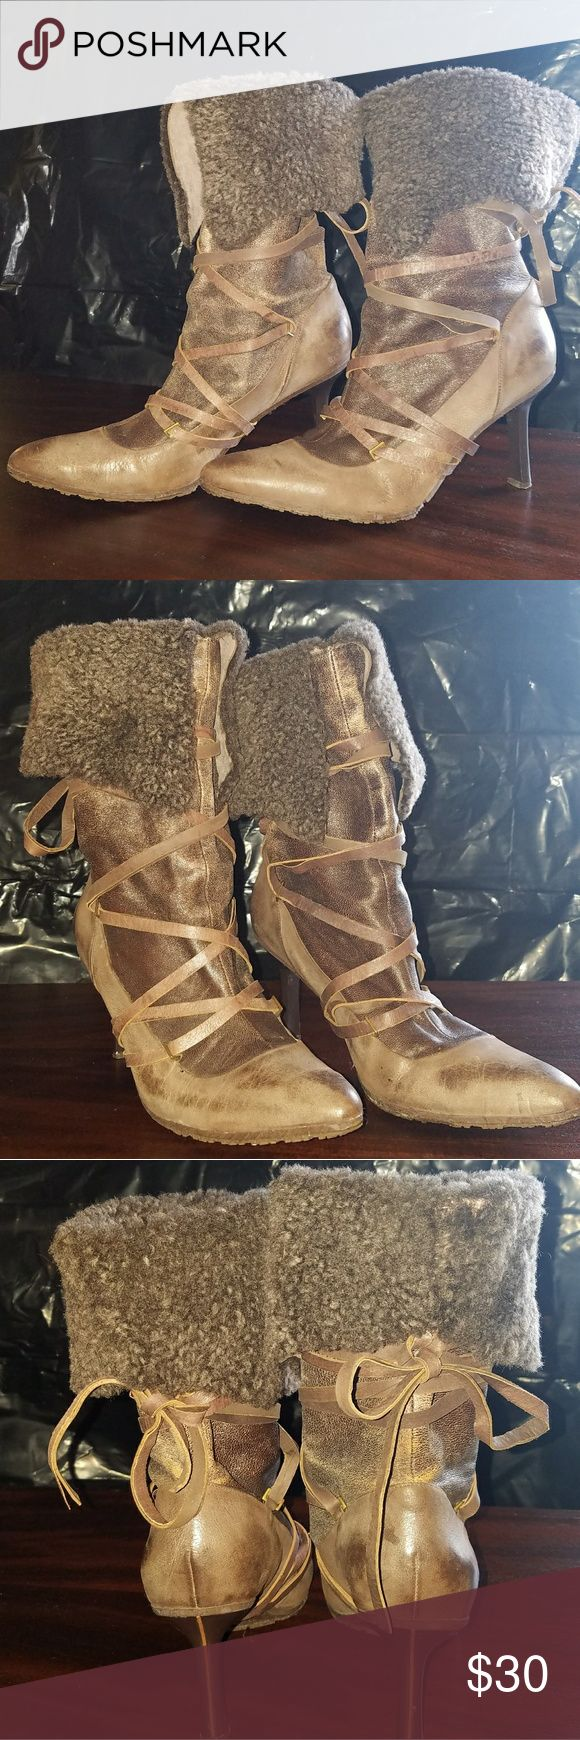 """Unique pair if Diesel lace up boots Cool pair of Diesel boots with fur & lace - they do have some damage, shown in pictures, but not noticeable when wearing. 3.5"""" heel Diesel Shoes Heeled Boots"""